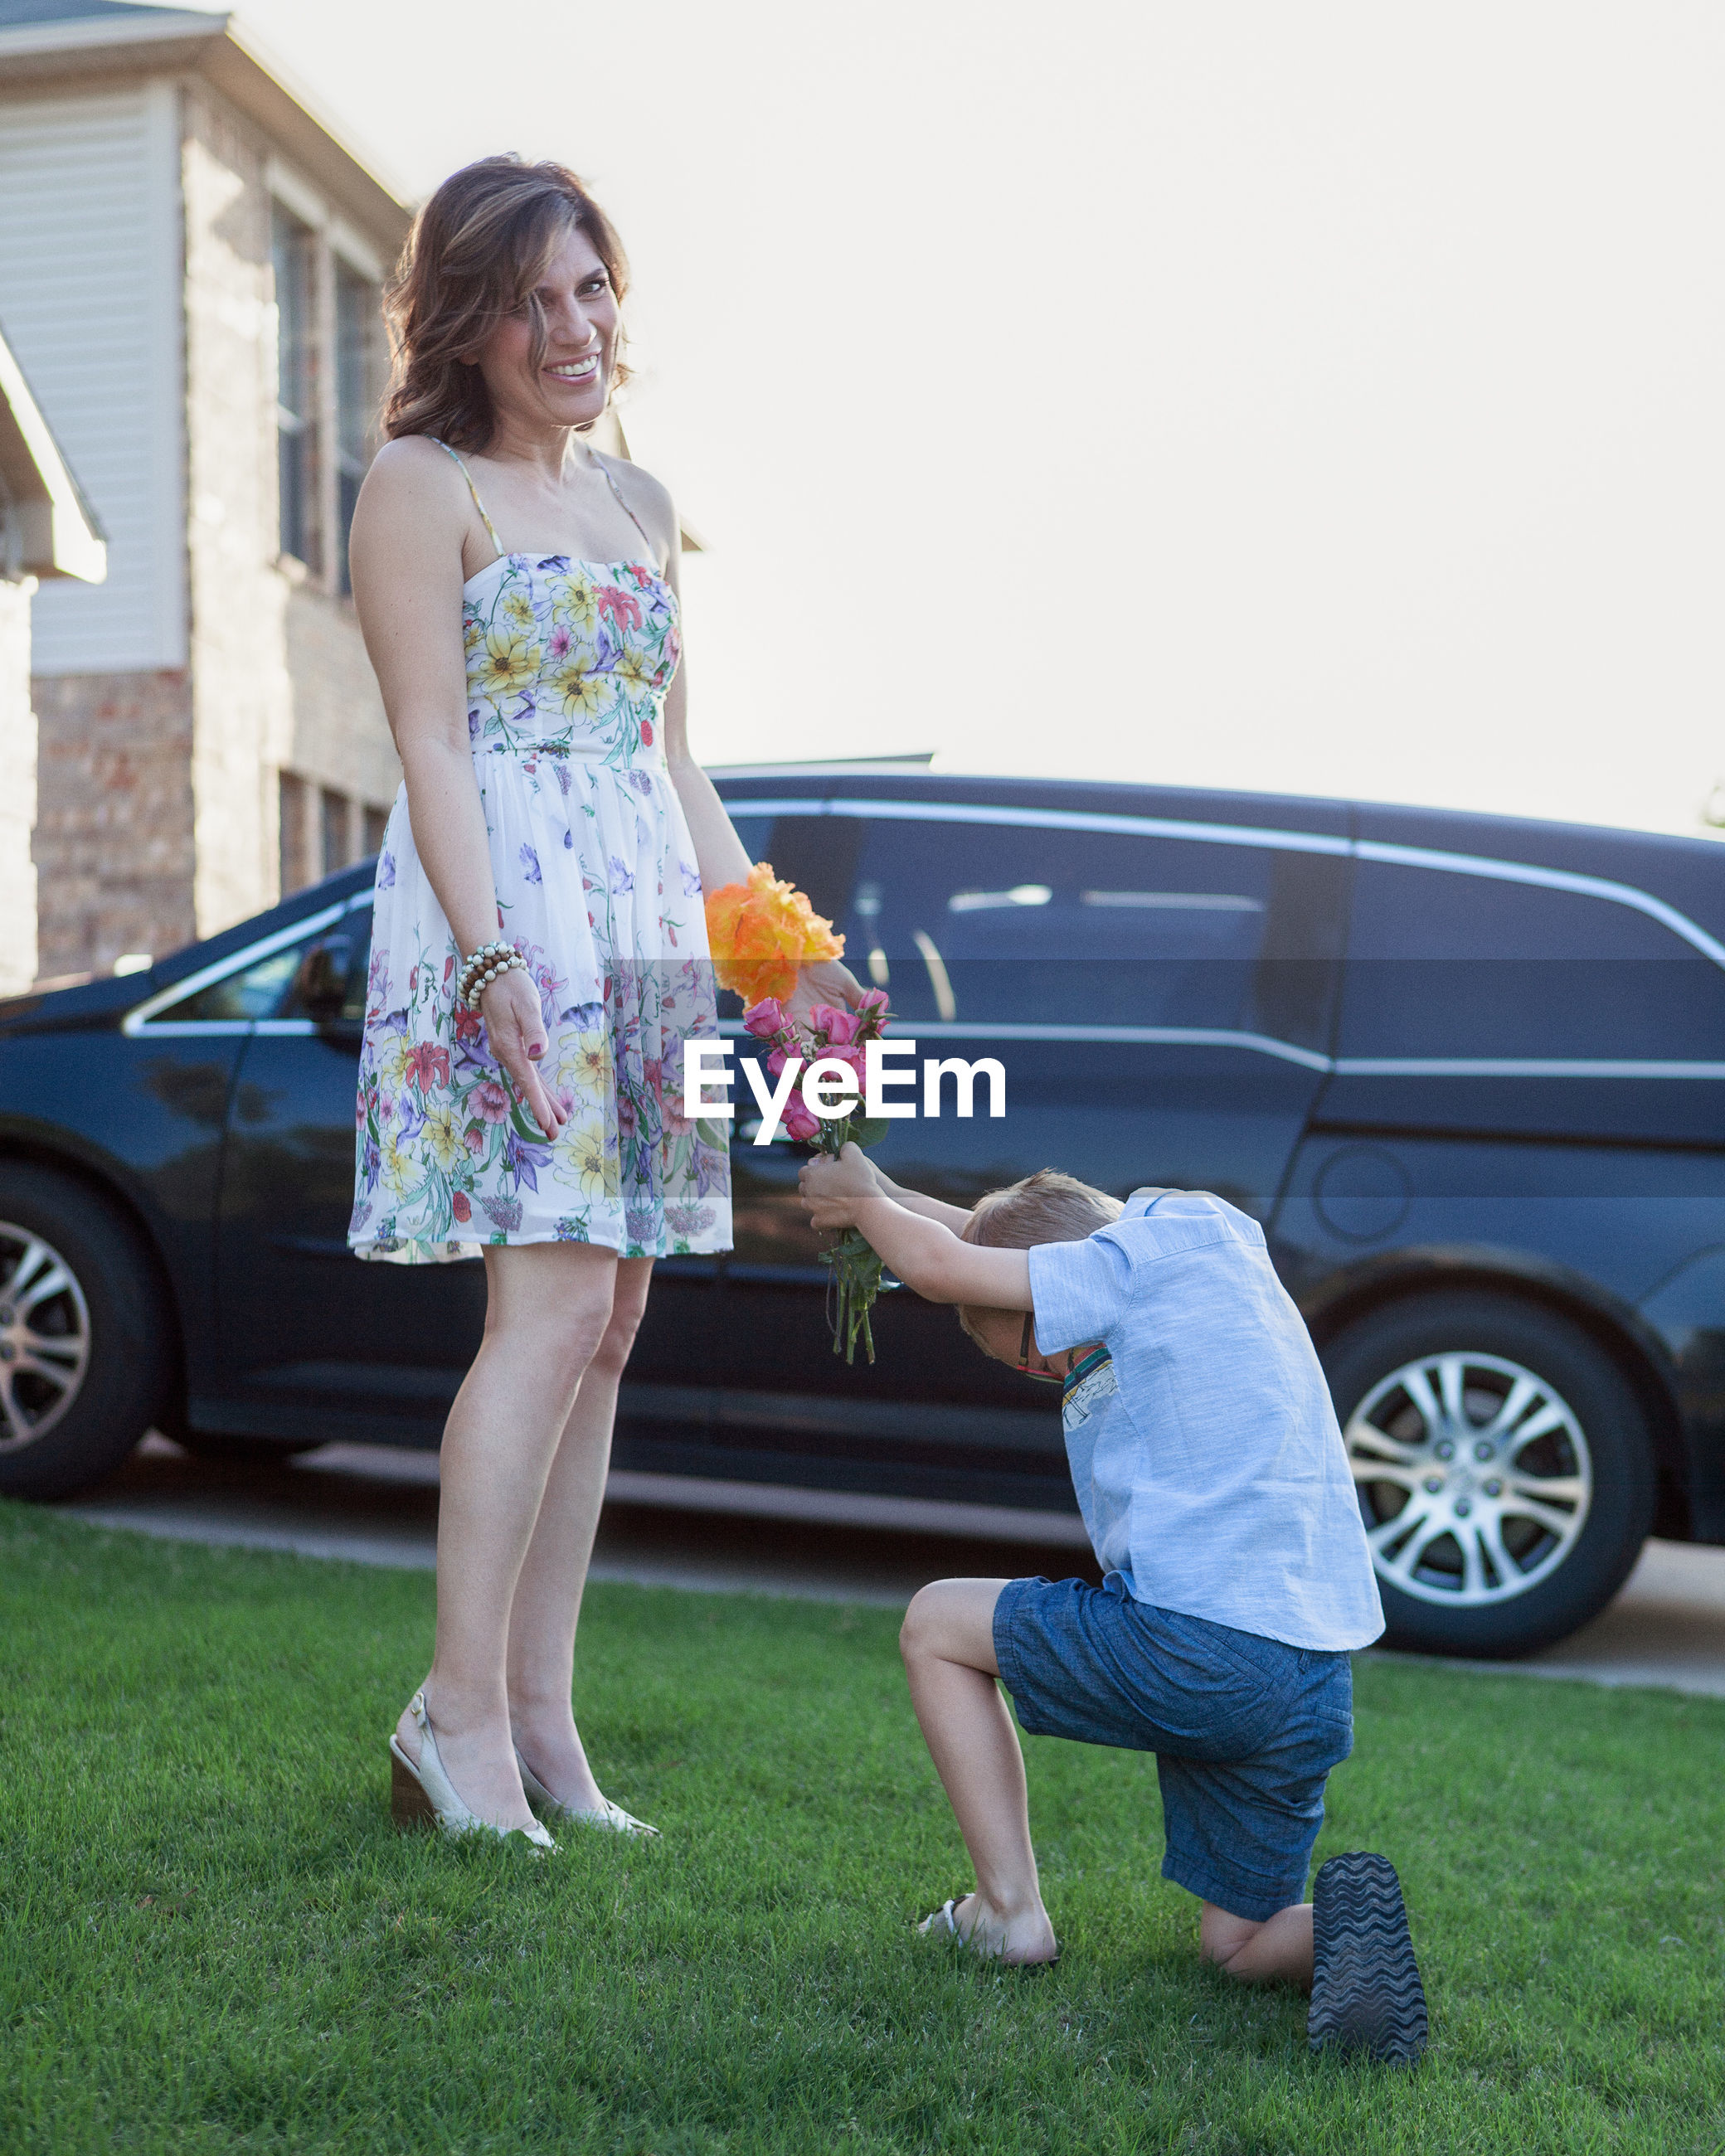 Son proposing mother while kneeling on field against clear sky